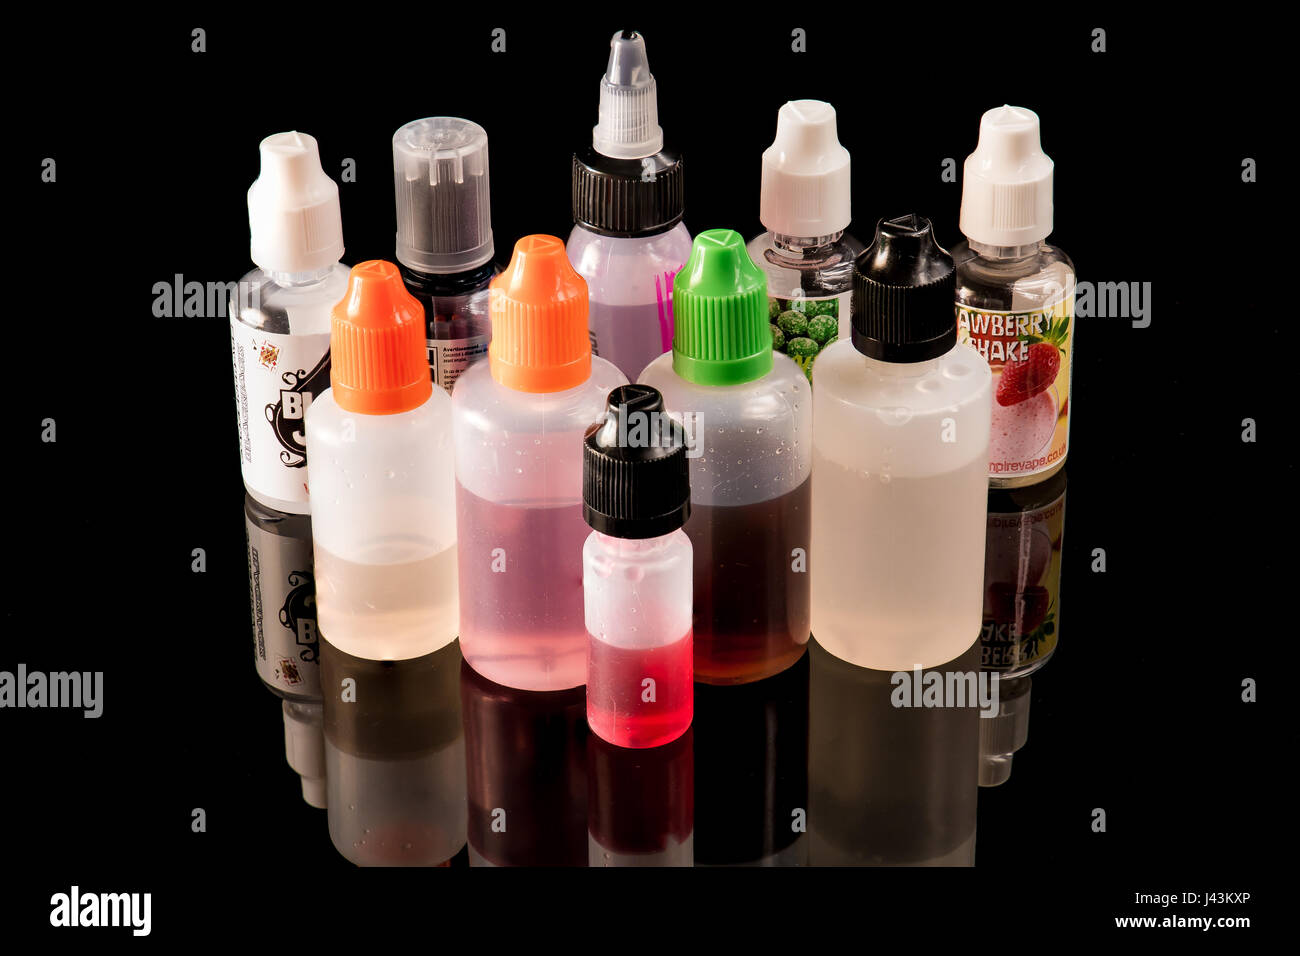 All plastic e-liquid bottles together - Stock Image